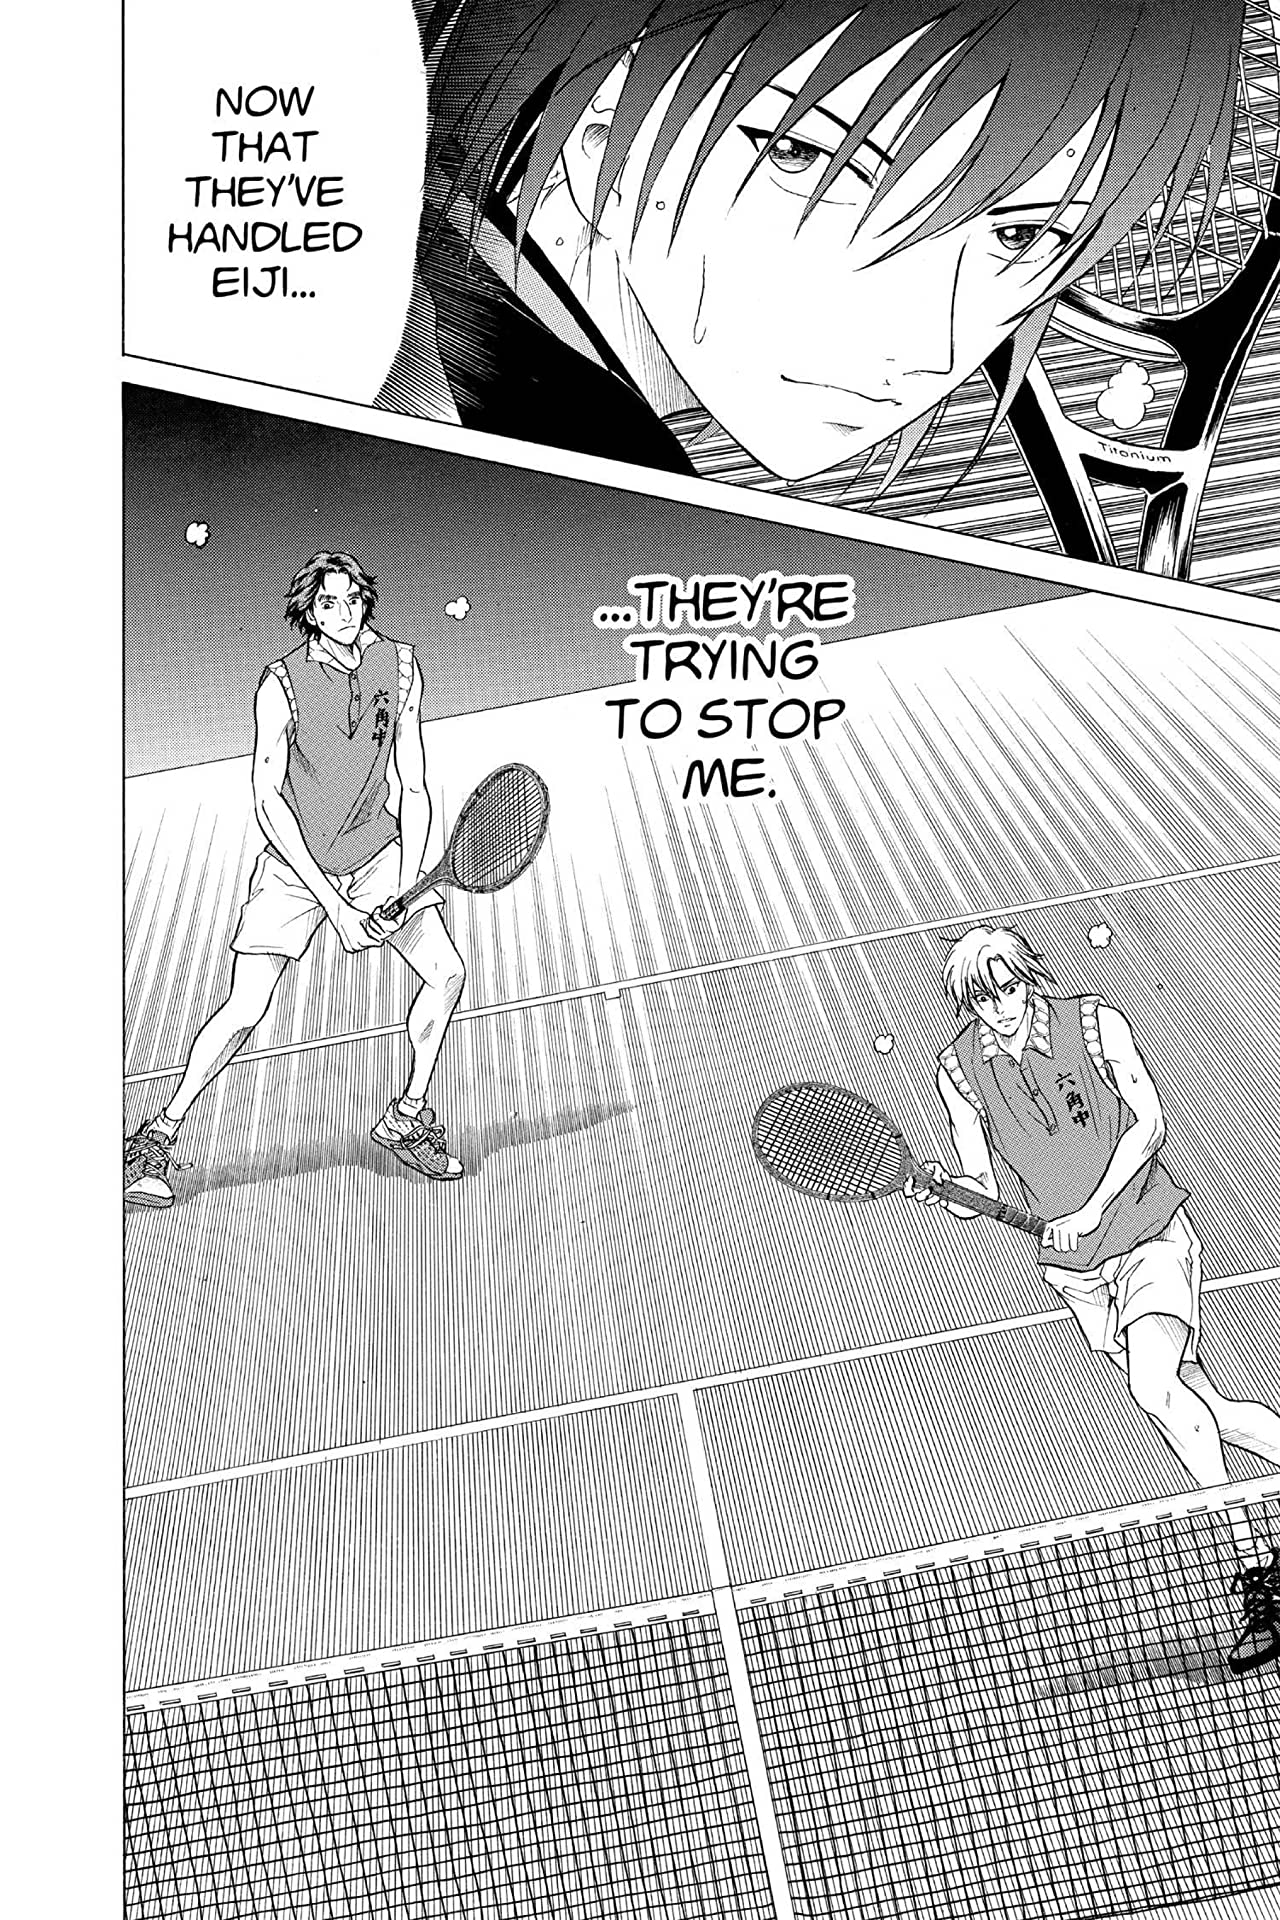 The Prince of Tennis Vol. 21